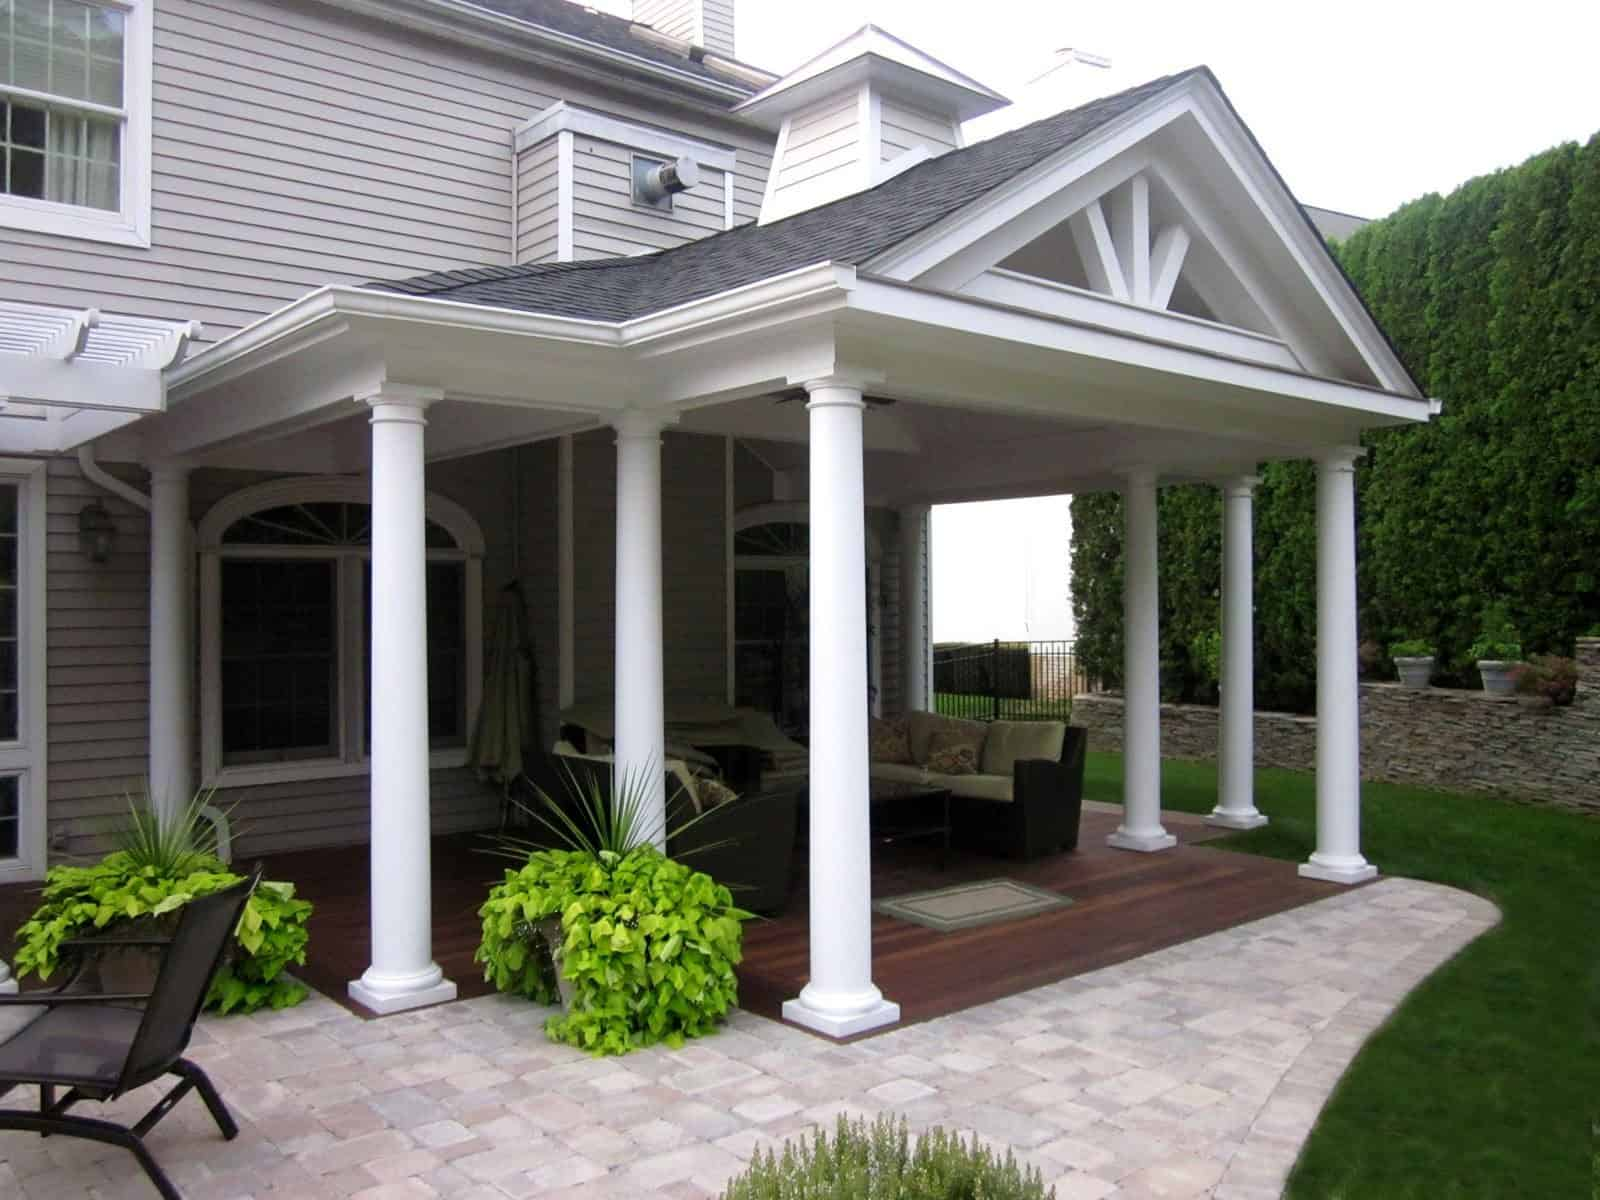 17' x 23' Outdoor Room with pitched roof, columns, and copper cupola - Roslyn, Long Island NY